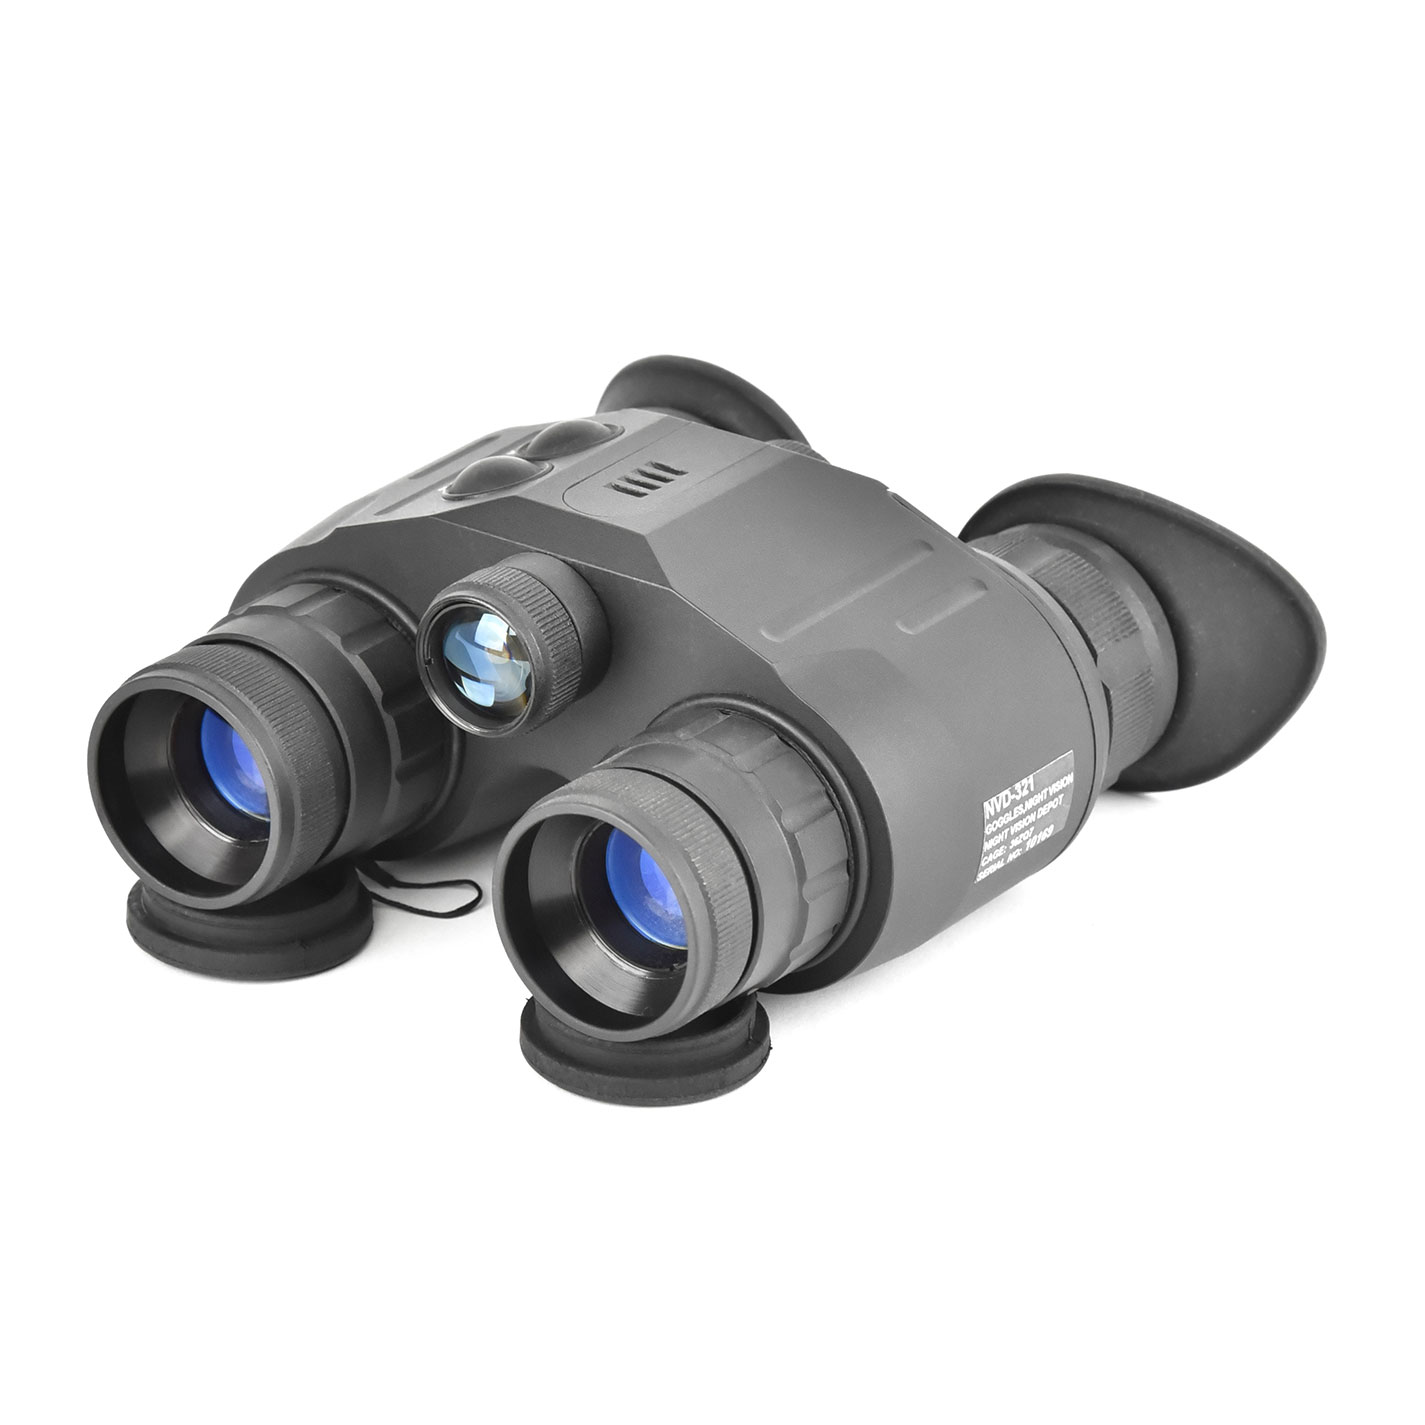 NVD-321 Night Vision Binocular